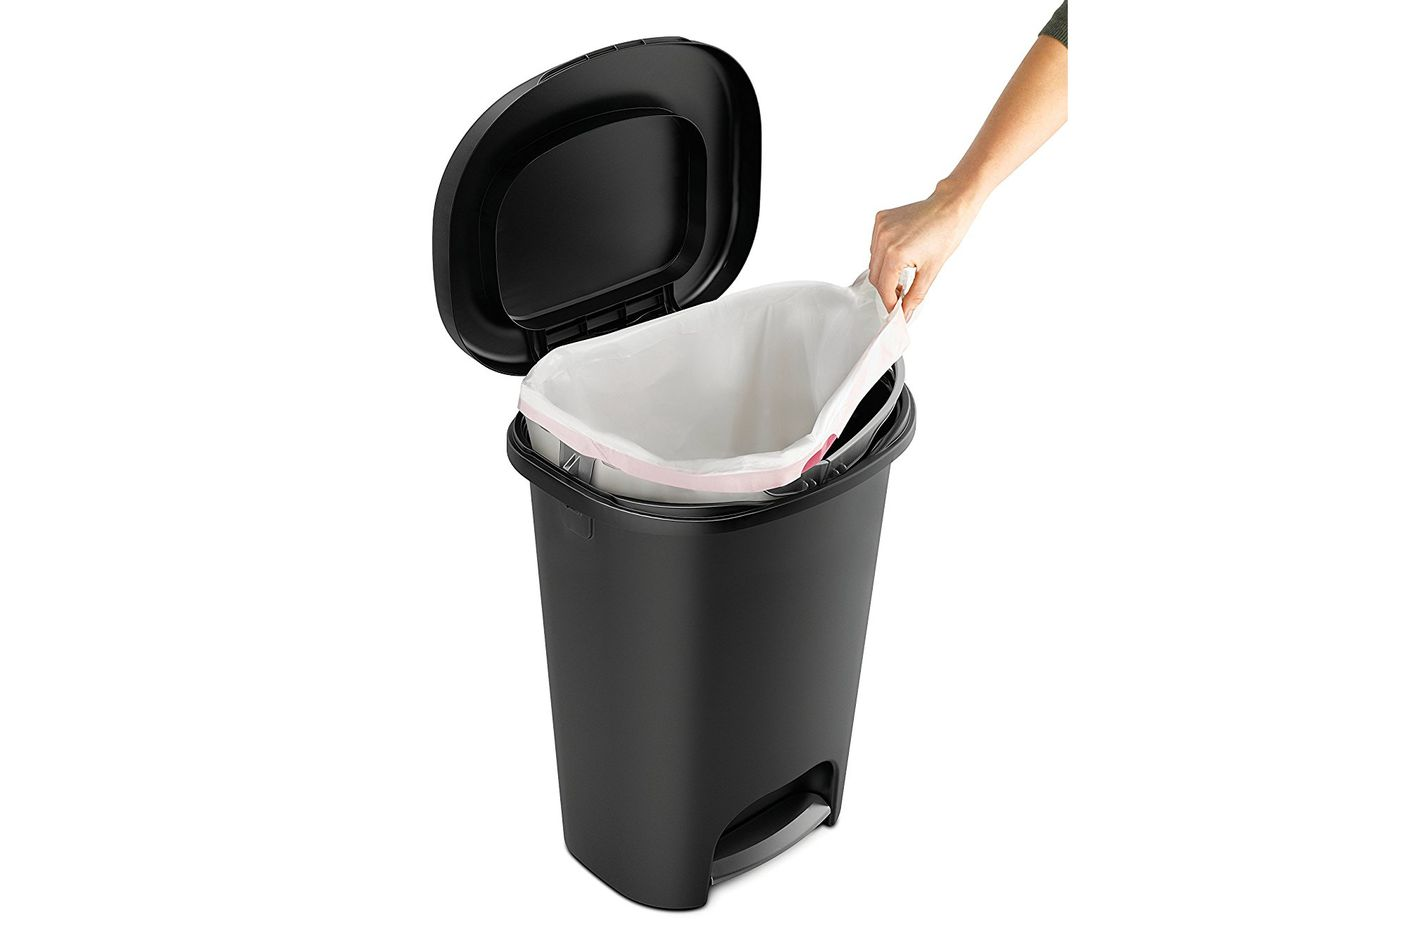 garbage cans tips you absolutely have to do. Can Under $25. Rubbermaid Step-On Wastebasket, 13 Gallon \u2014 Black Garbage Cans Tips You Absolutely Have To Do P